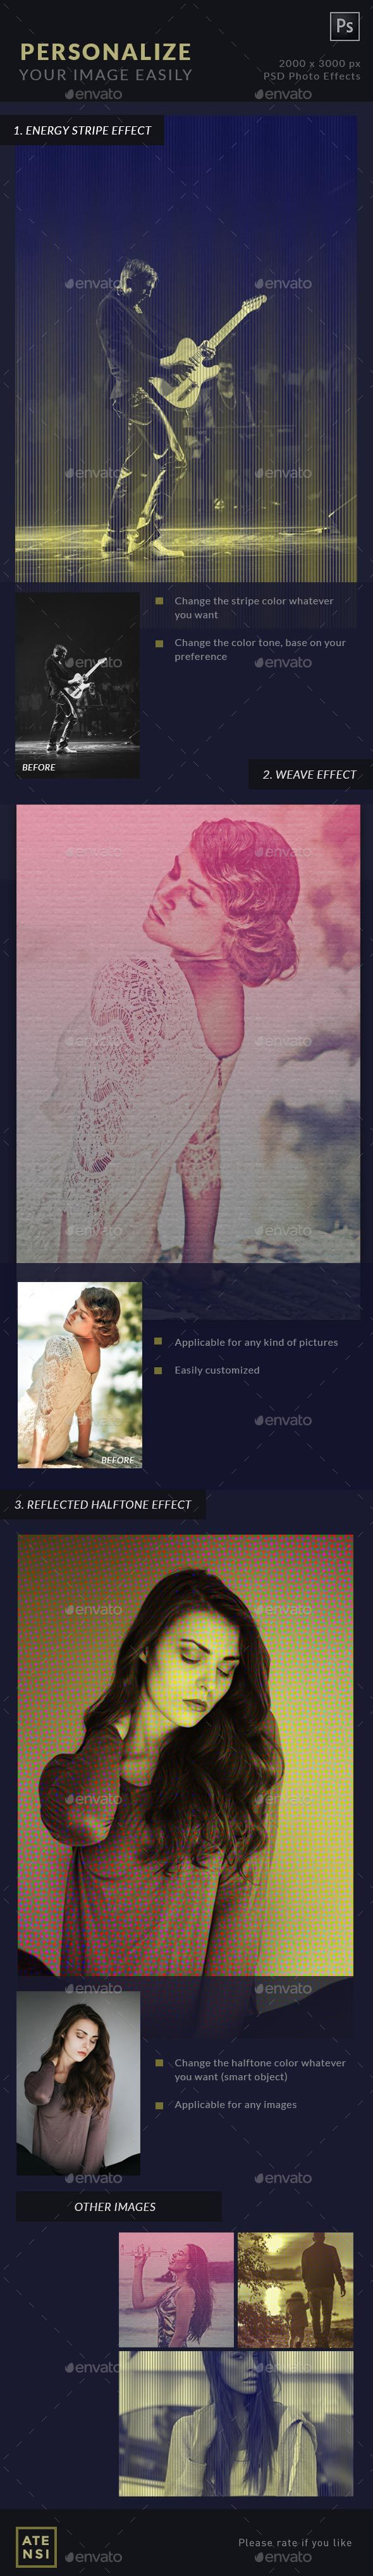 Vivid Photo Effects - Photo Templates Graphics